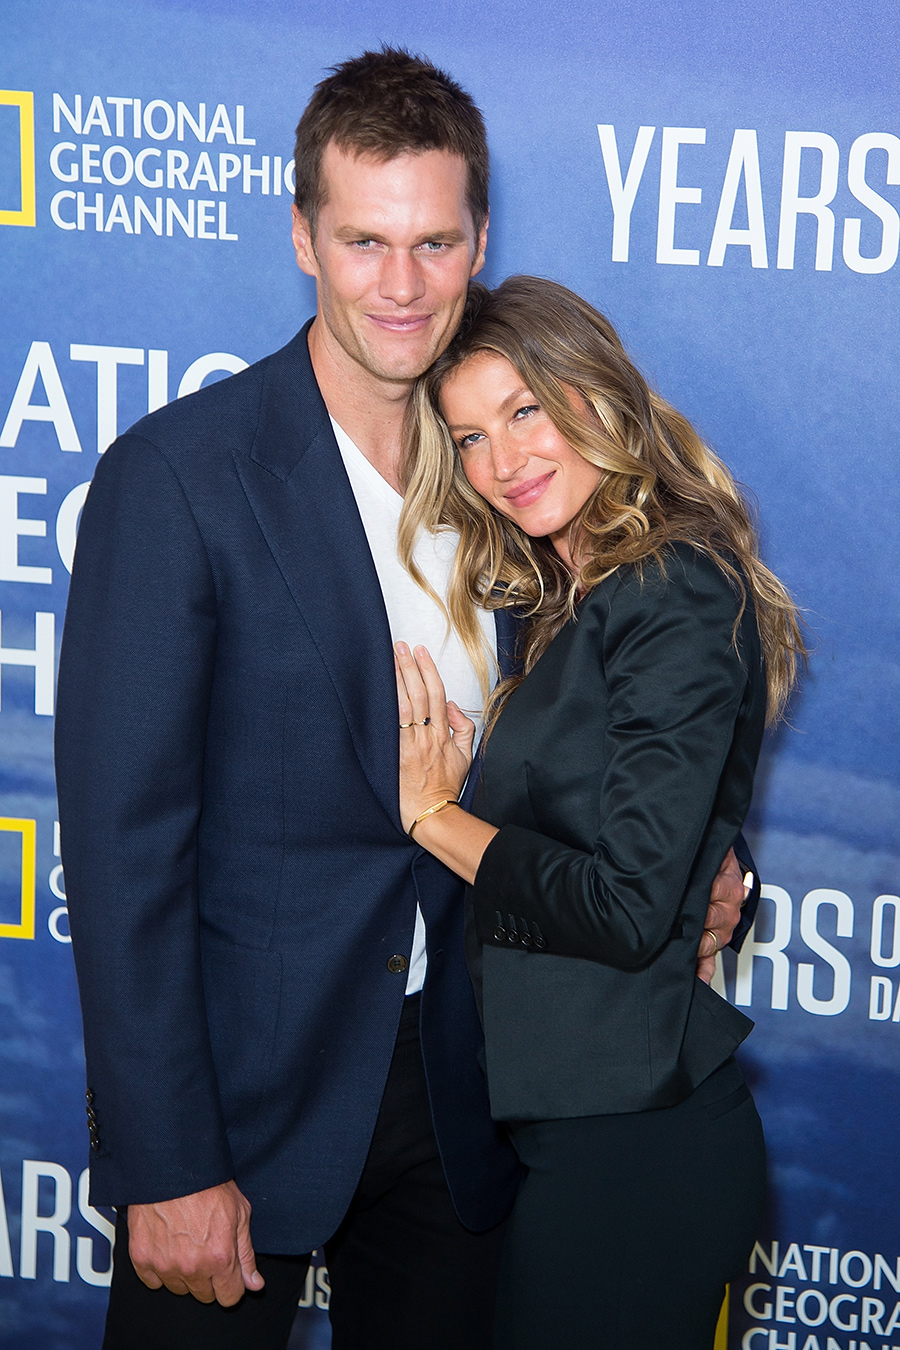 Model Gisele Bundchen and husband Tom Brady